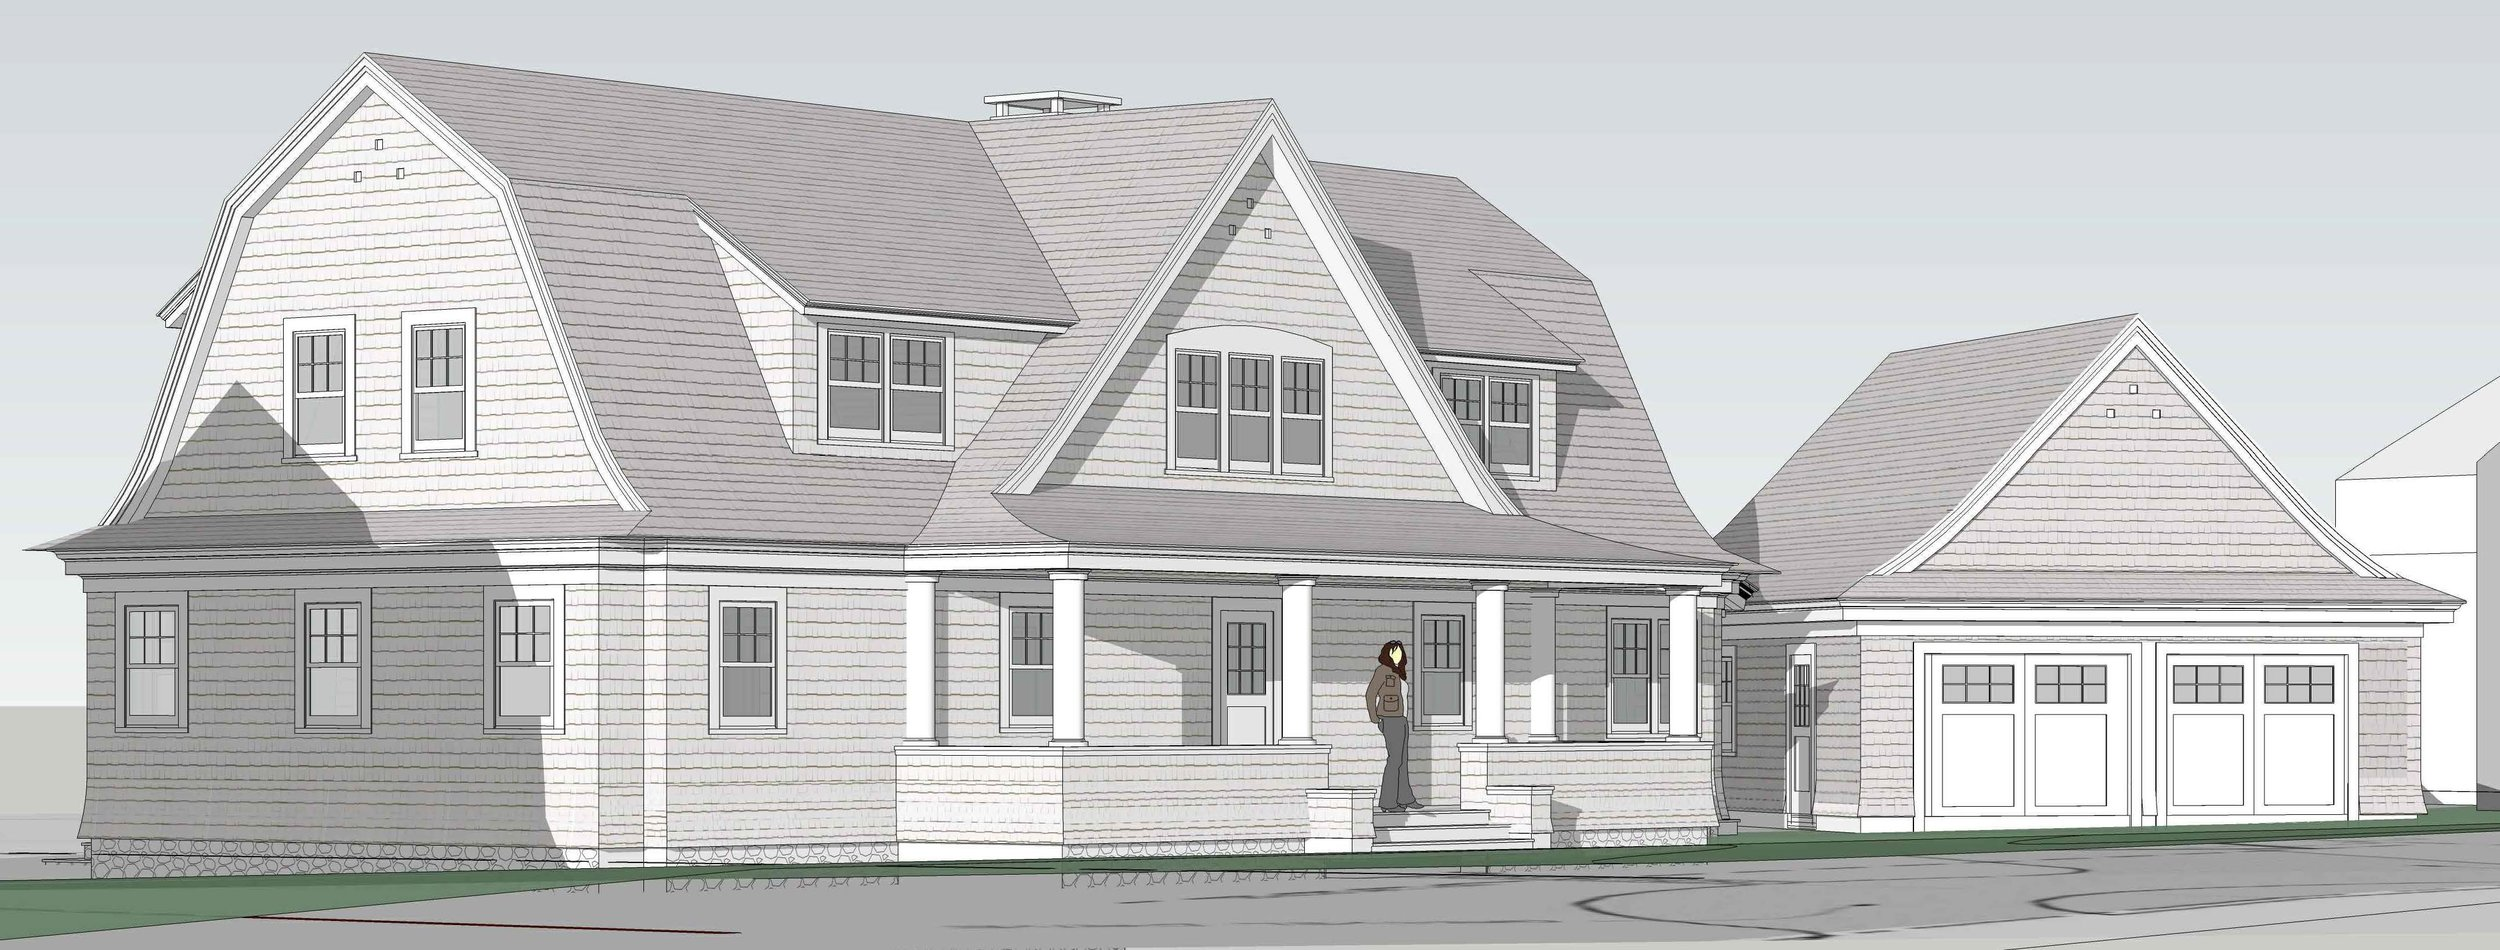 Rendering of New Shingle Style Home